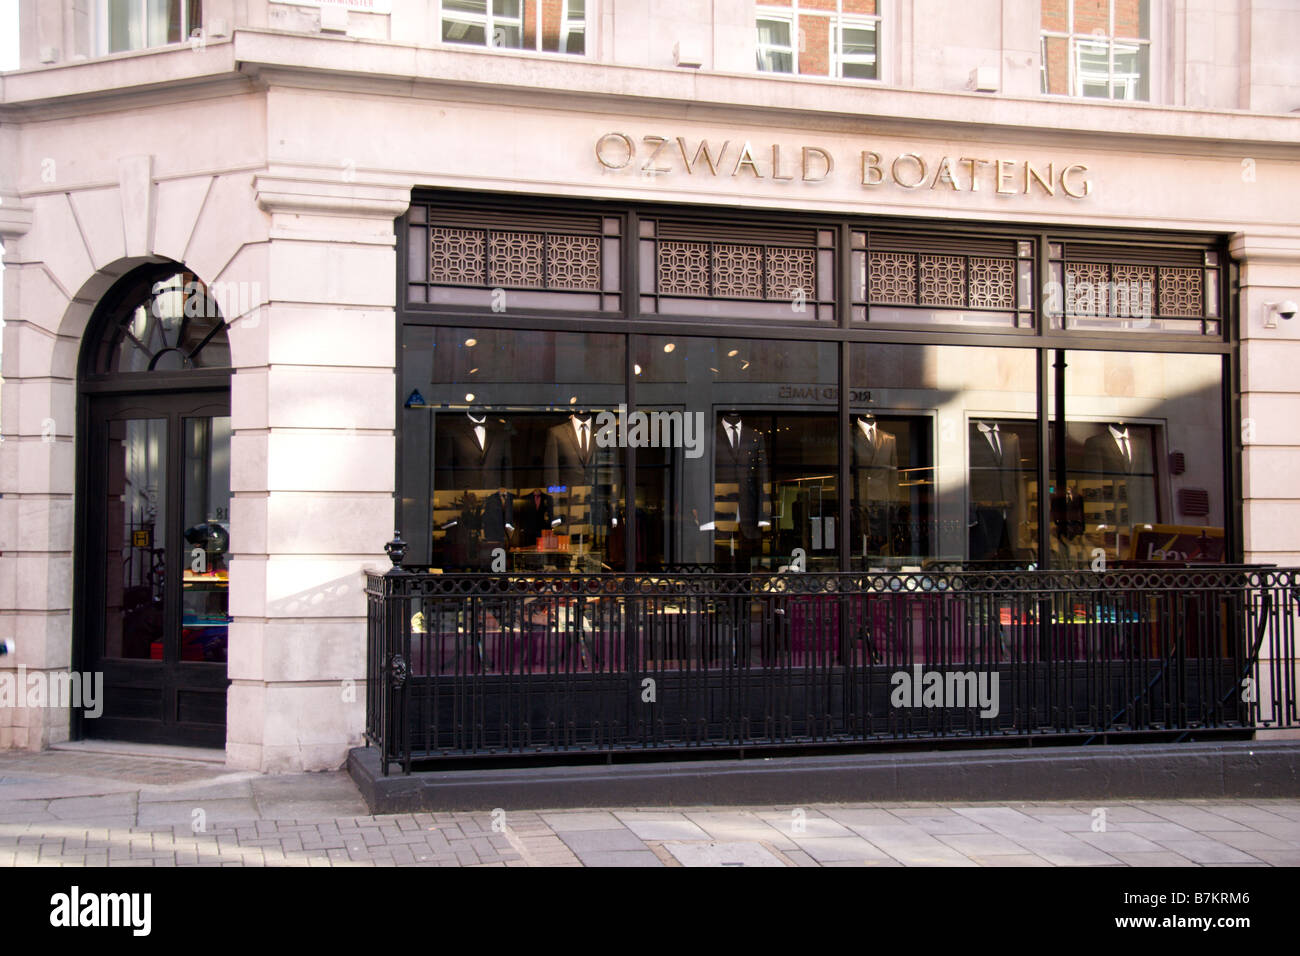 The shop front of the Ozwald Boetang fashion store, Savile Row, London. Jan 2009 - Stock Image